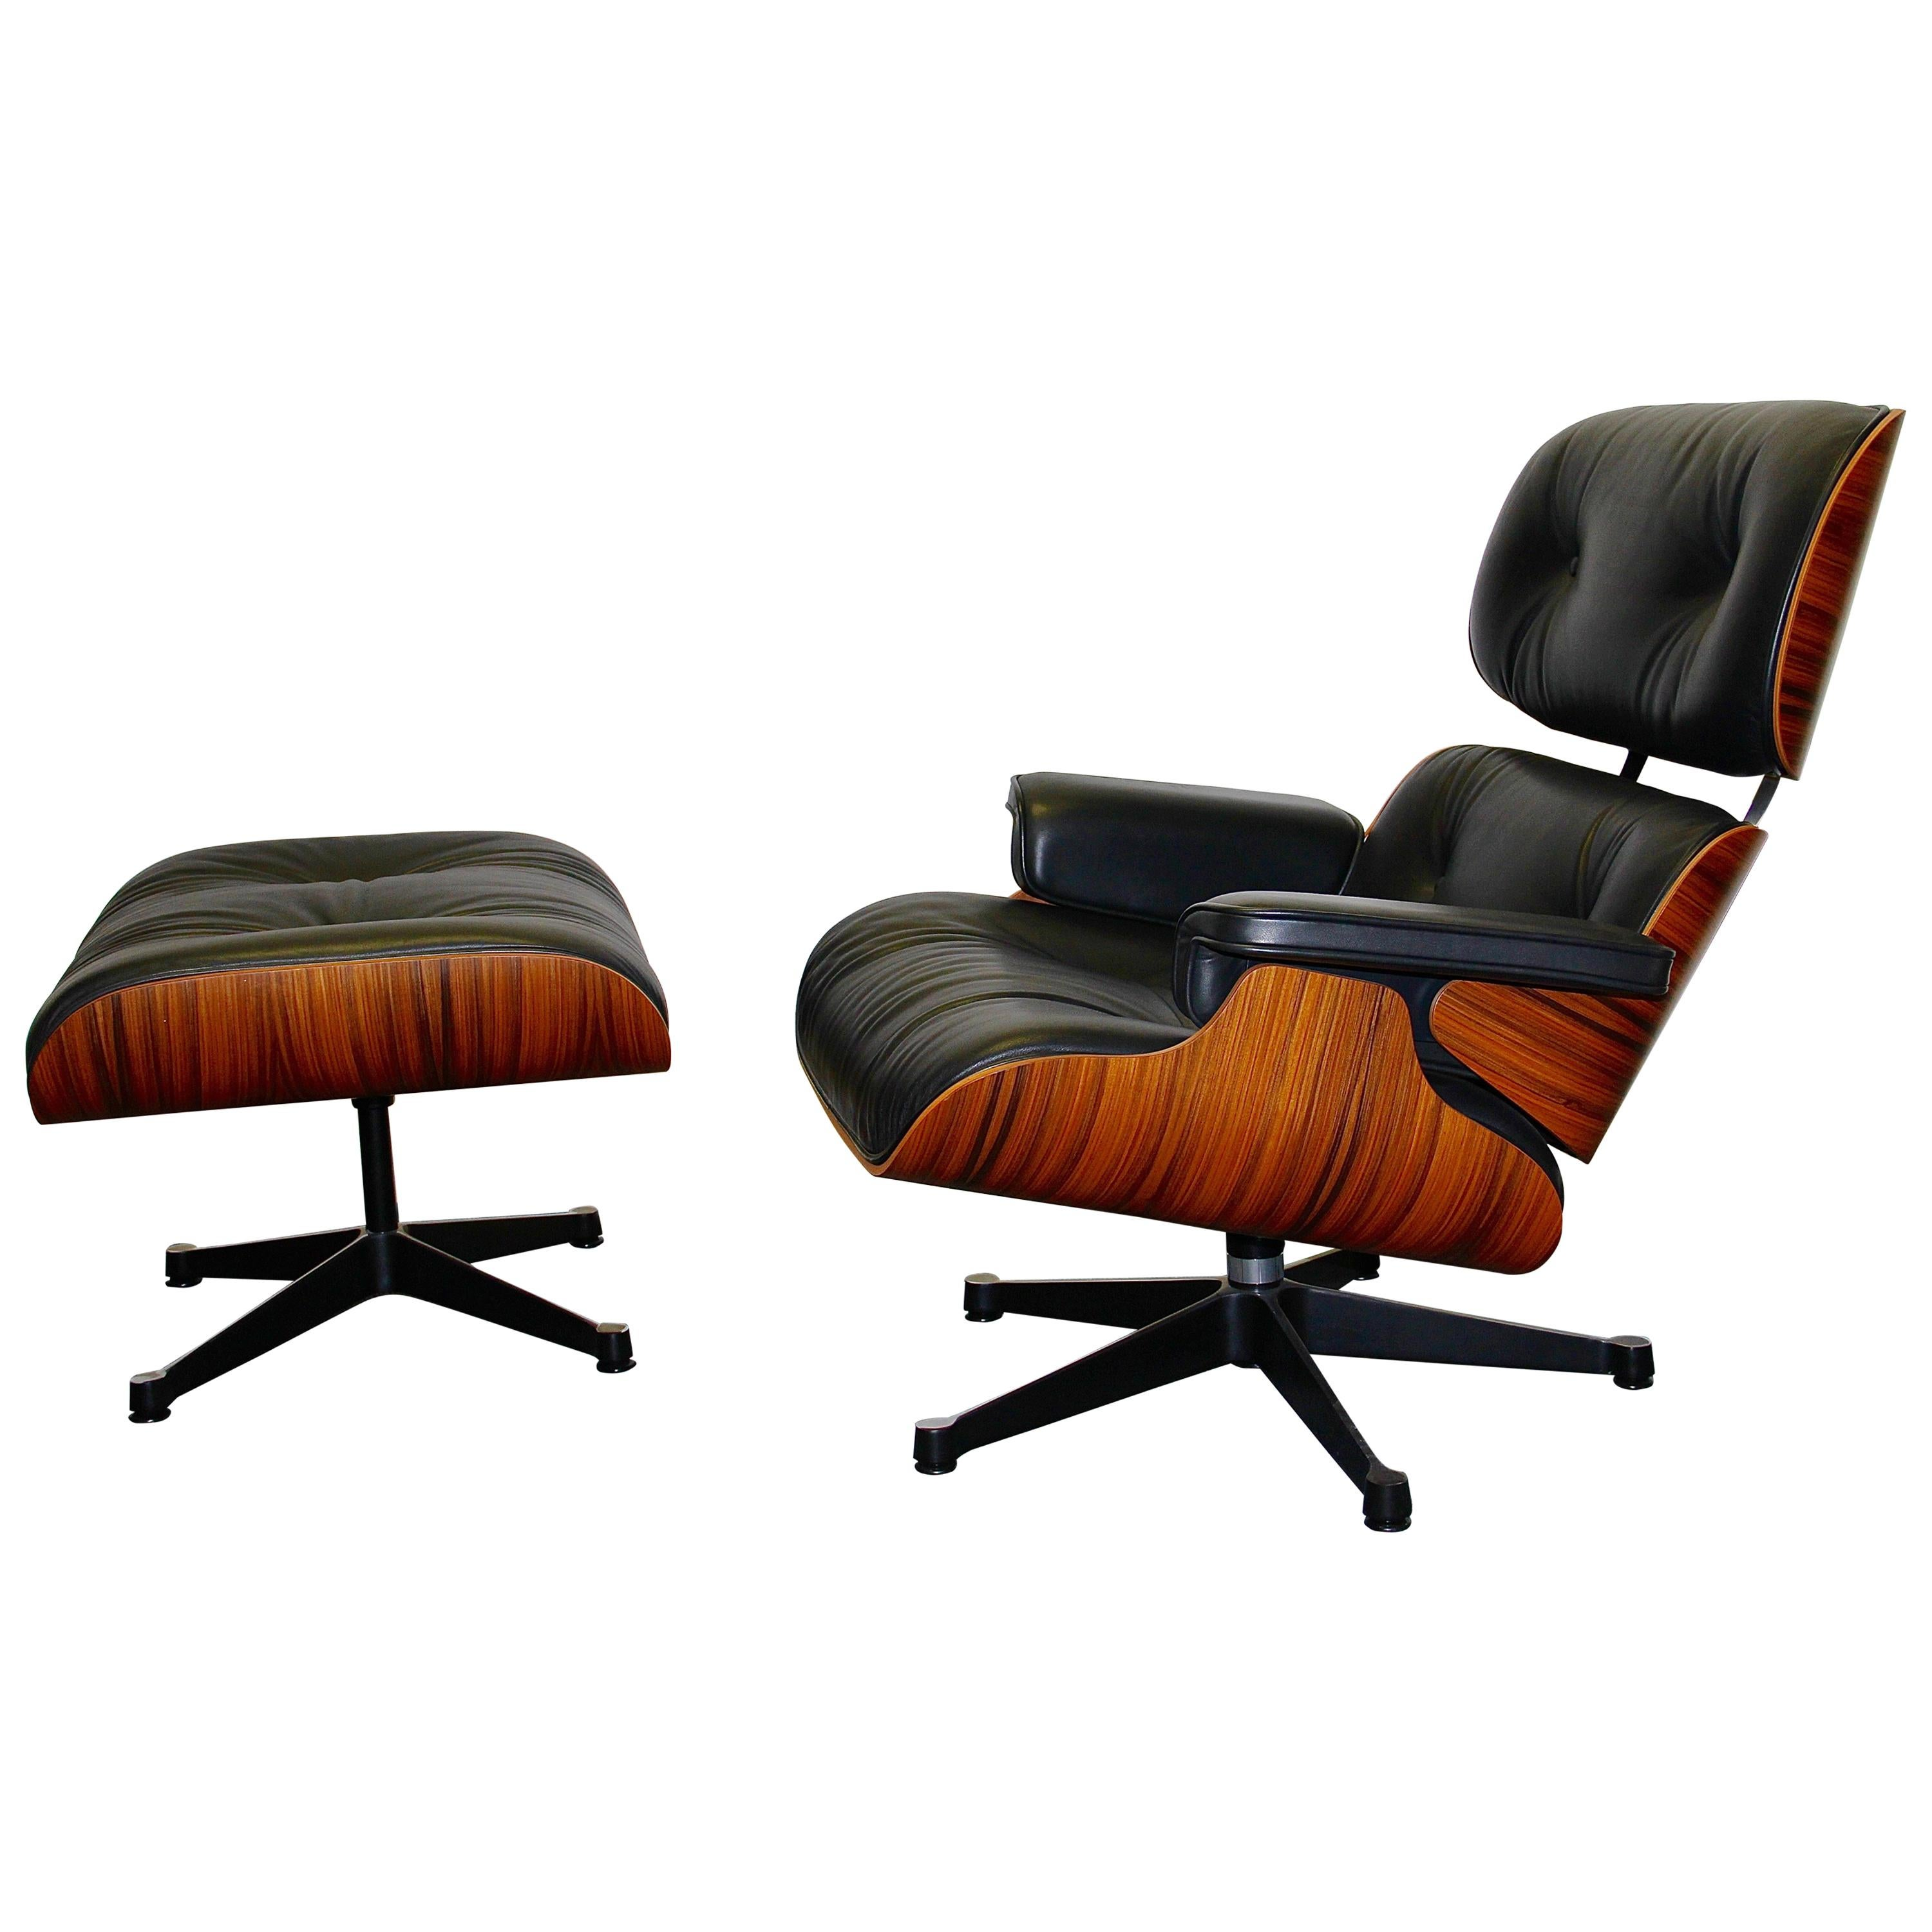 Vitra Eames Lounge Chair Vitra Charles Ray Eames Lounge Chair And Ottoman Limited Anniversary Edition